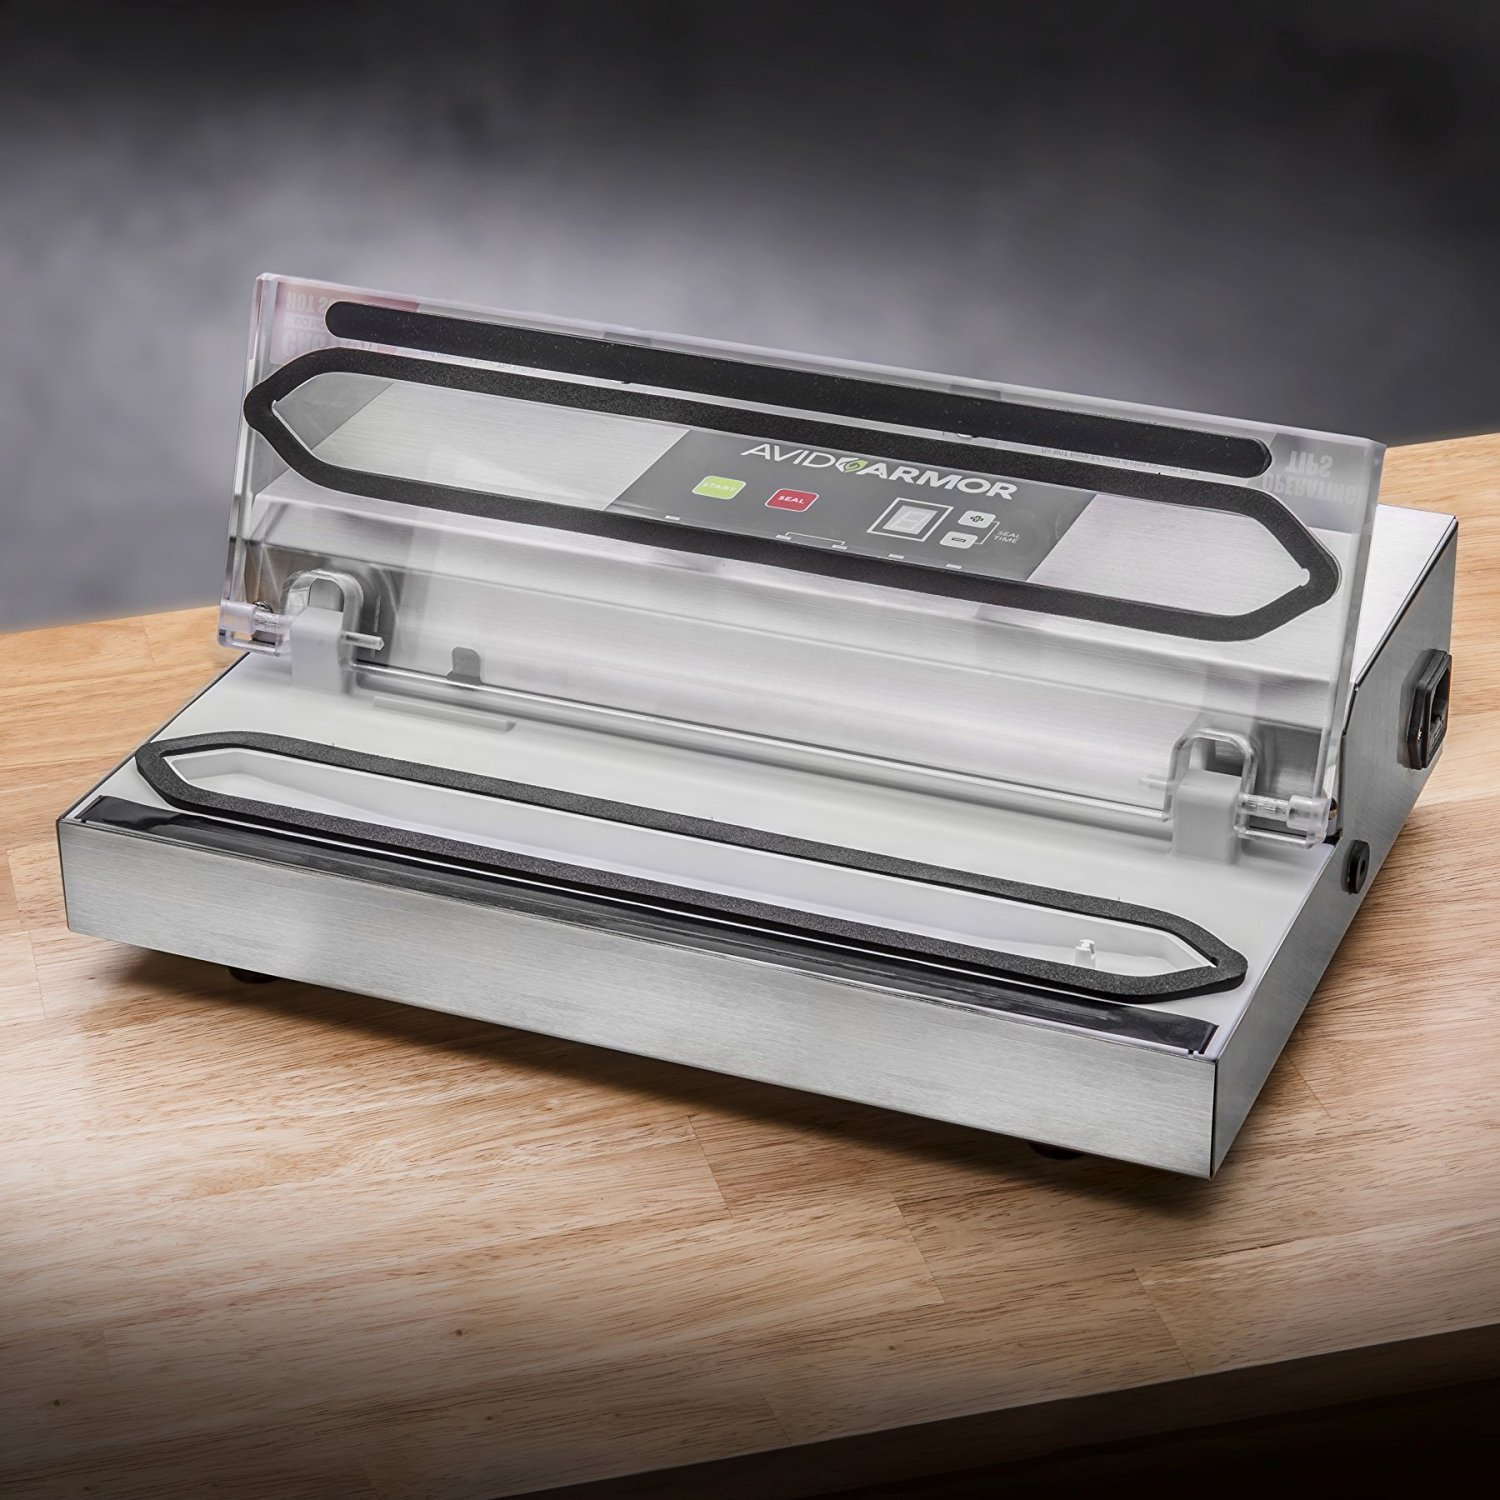 Avid Armor Vacuum Sealer Machine - A100 Stainless Construction, Clear Lid, Commercial Double Piston Pump Heavy Duty 12'' Wide Seal Bar Built in Cooling Fan Includes 30 Pre-cut Bags and Accessory Hose by Avid Armor (Image #3)